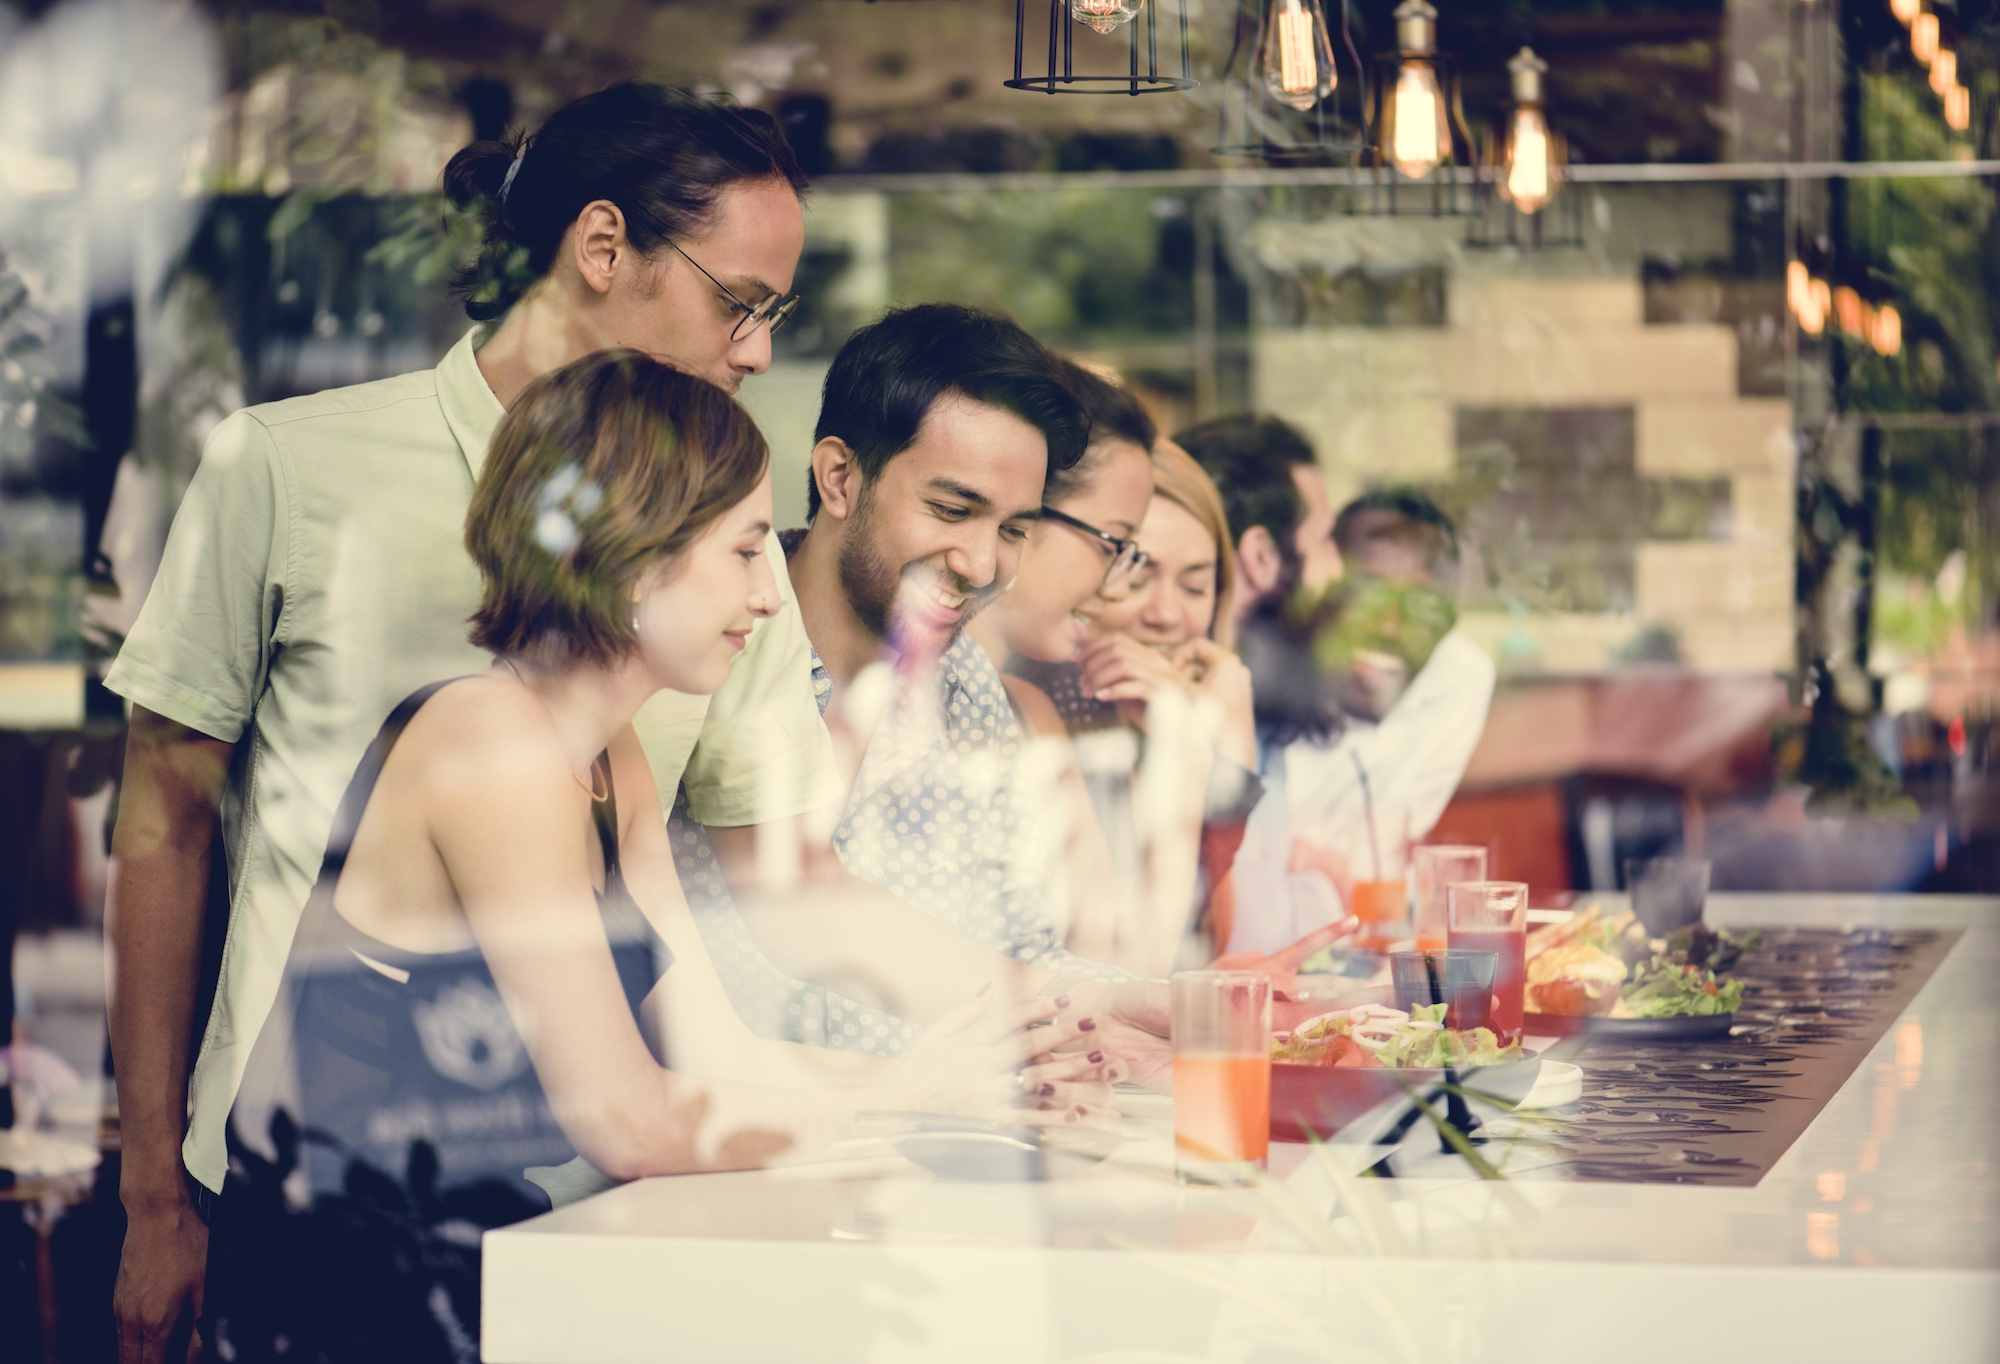 diverse-friends-together-in-the-restaurant-PY78KMW